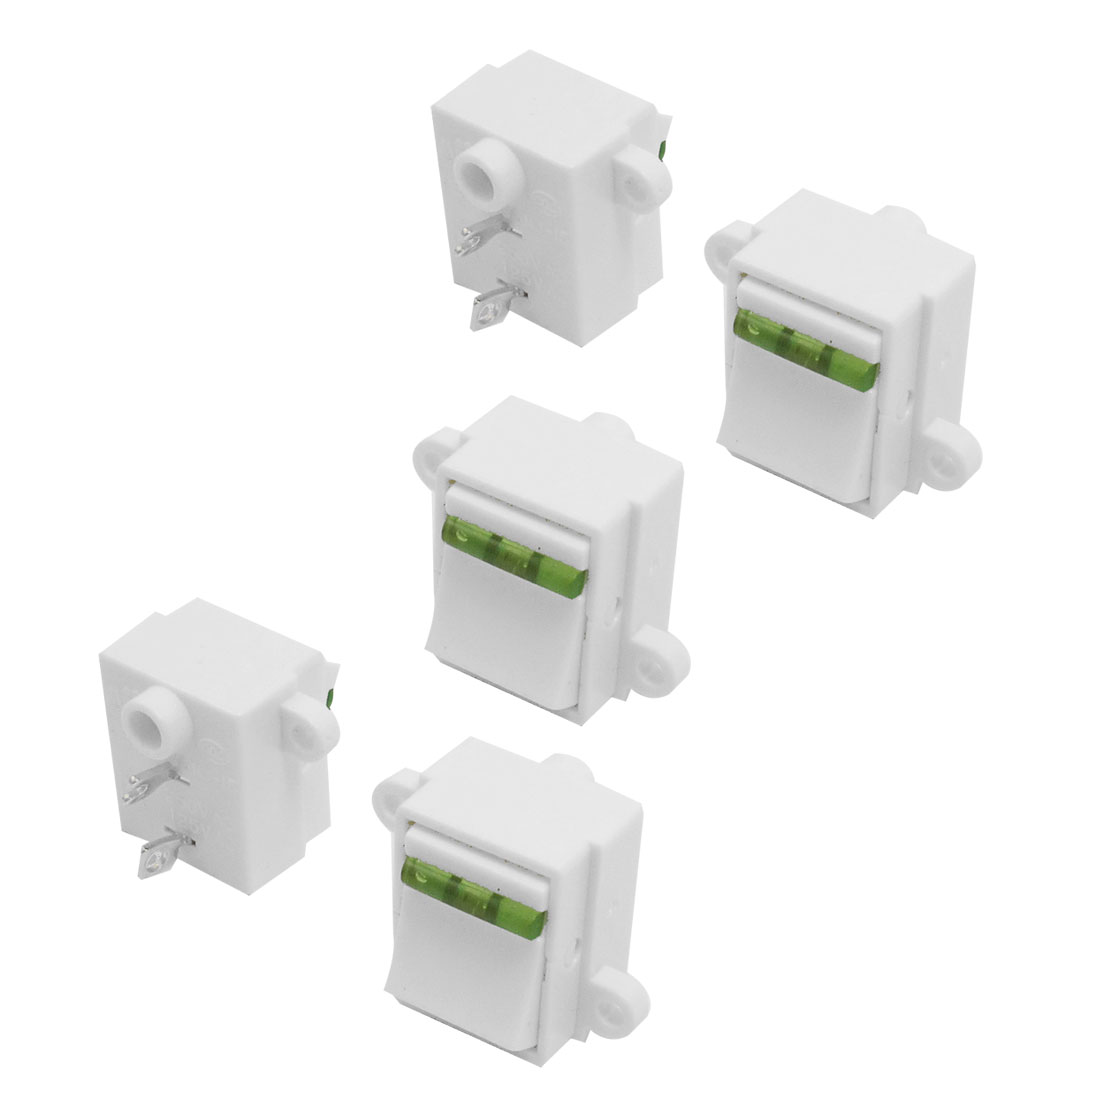 5 Pcs Green White 2 pole SPST On/Off Rocker Switch AC 125V/13A 250V/10A